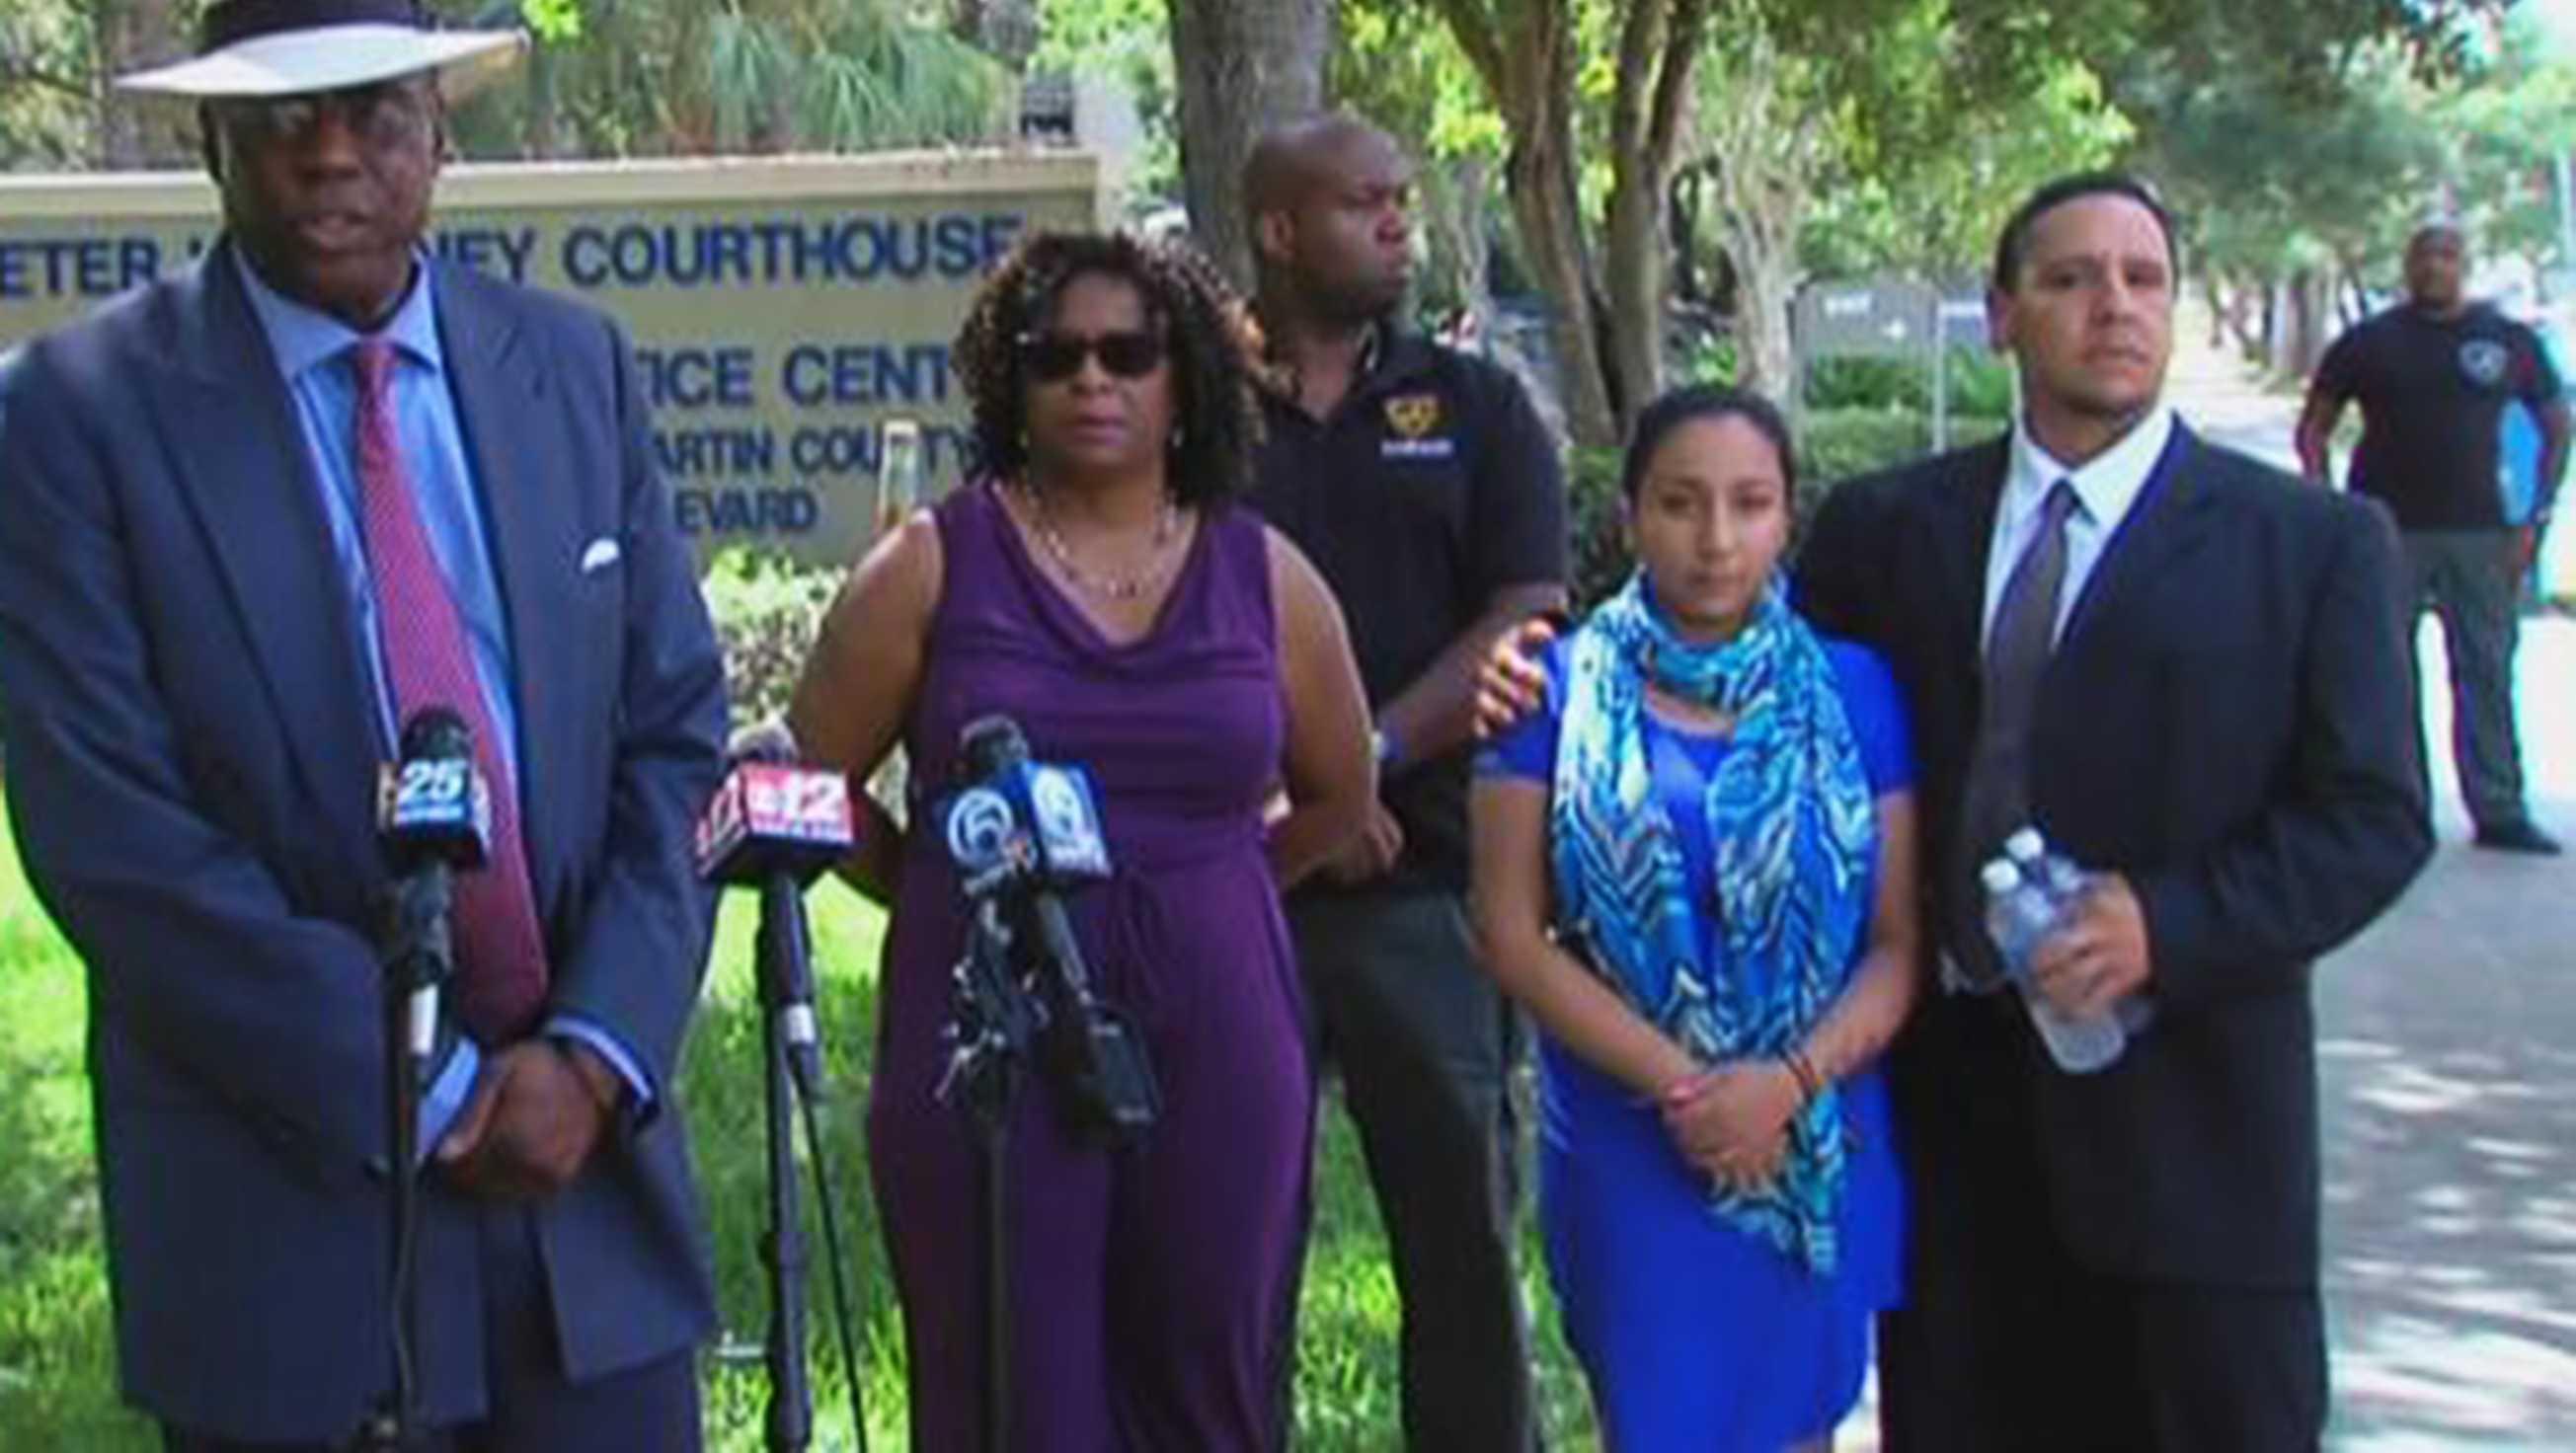 'Jasmine,' also known as Celeste Guap stands next to her attorney.